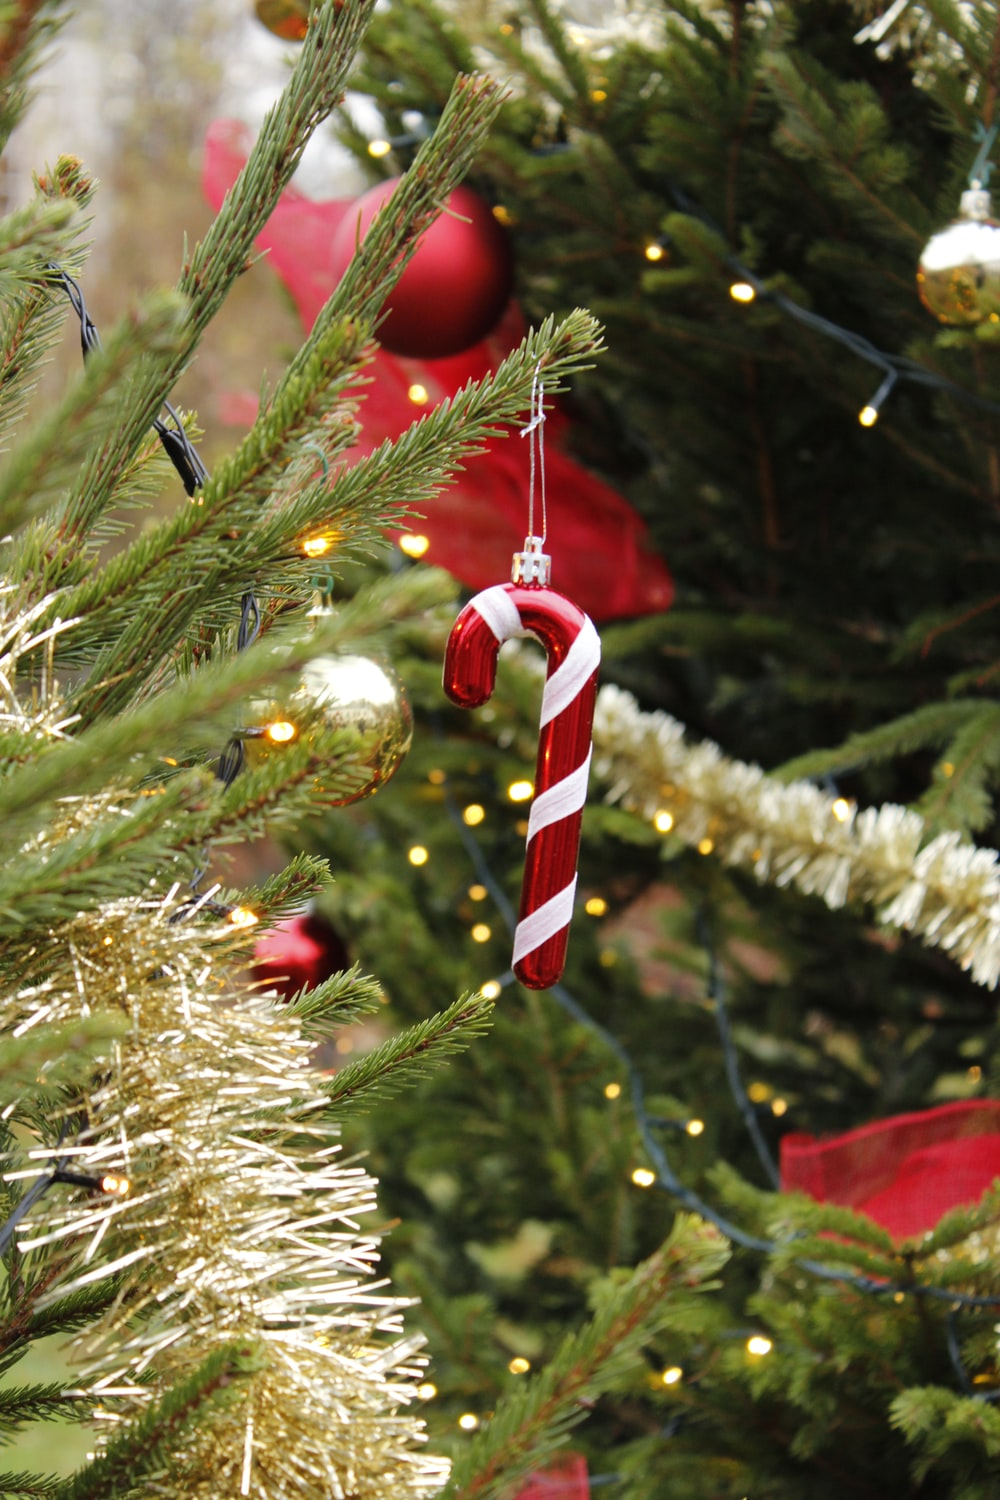 red and white candy cane on brown tree